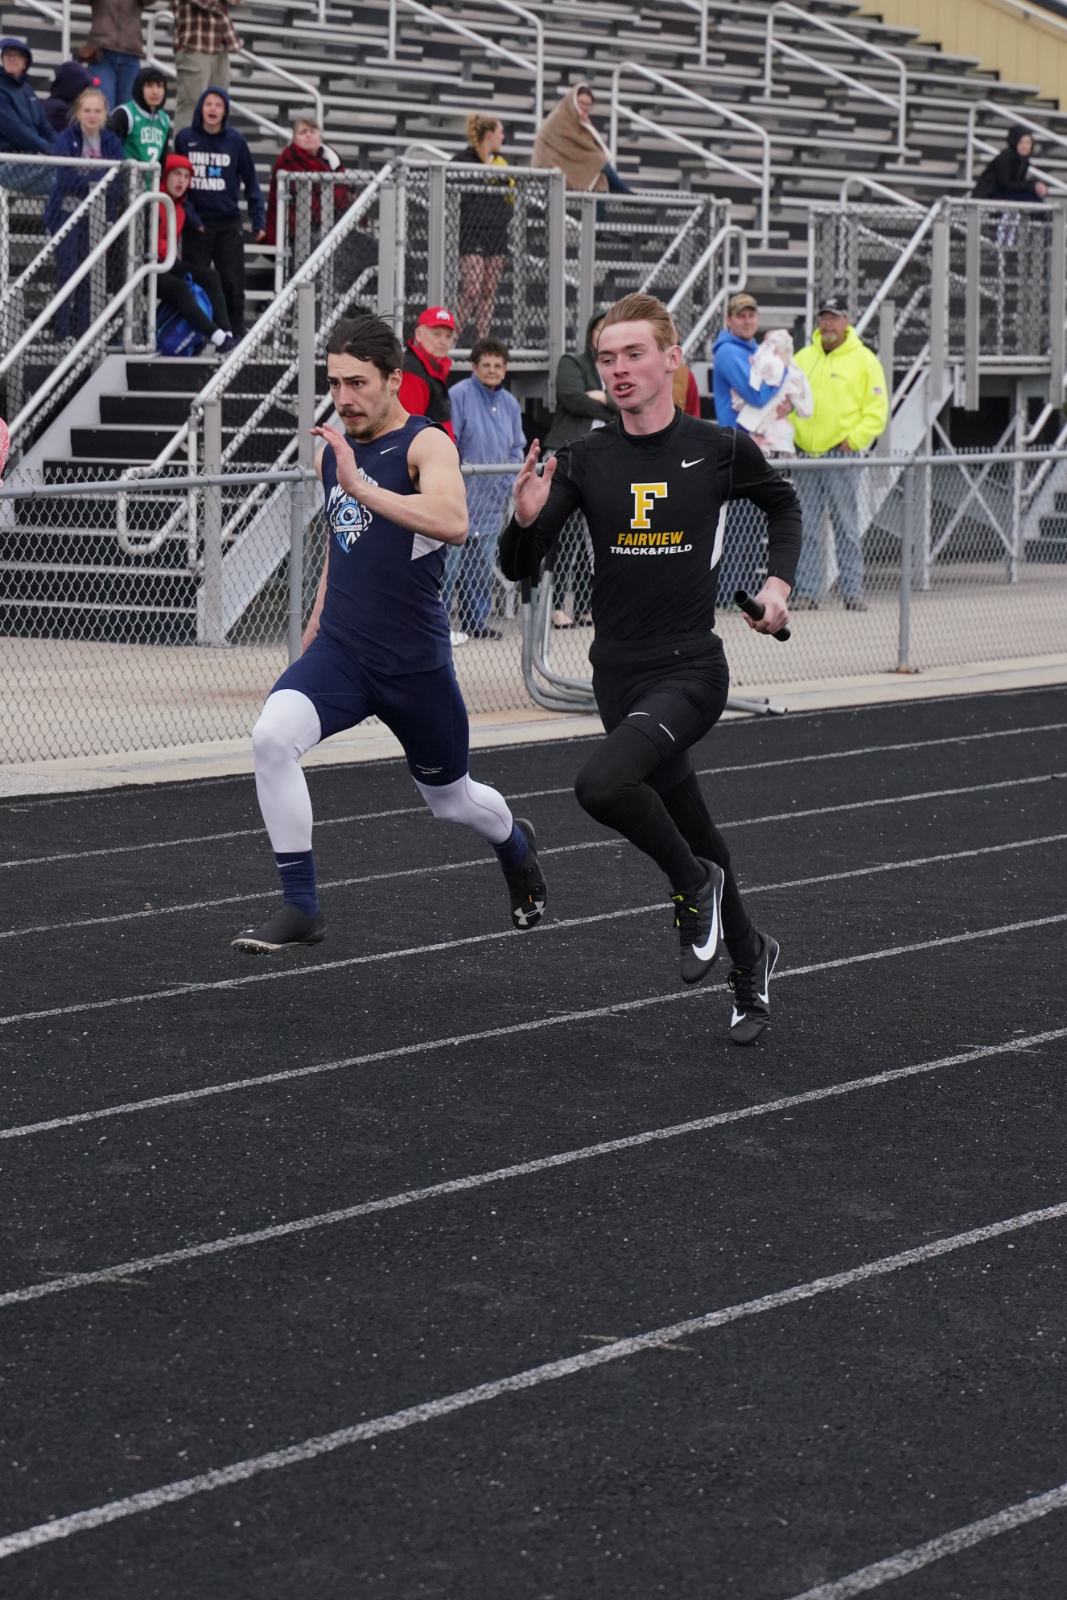 Track athletes to compete at Regional track meet